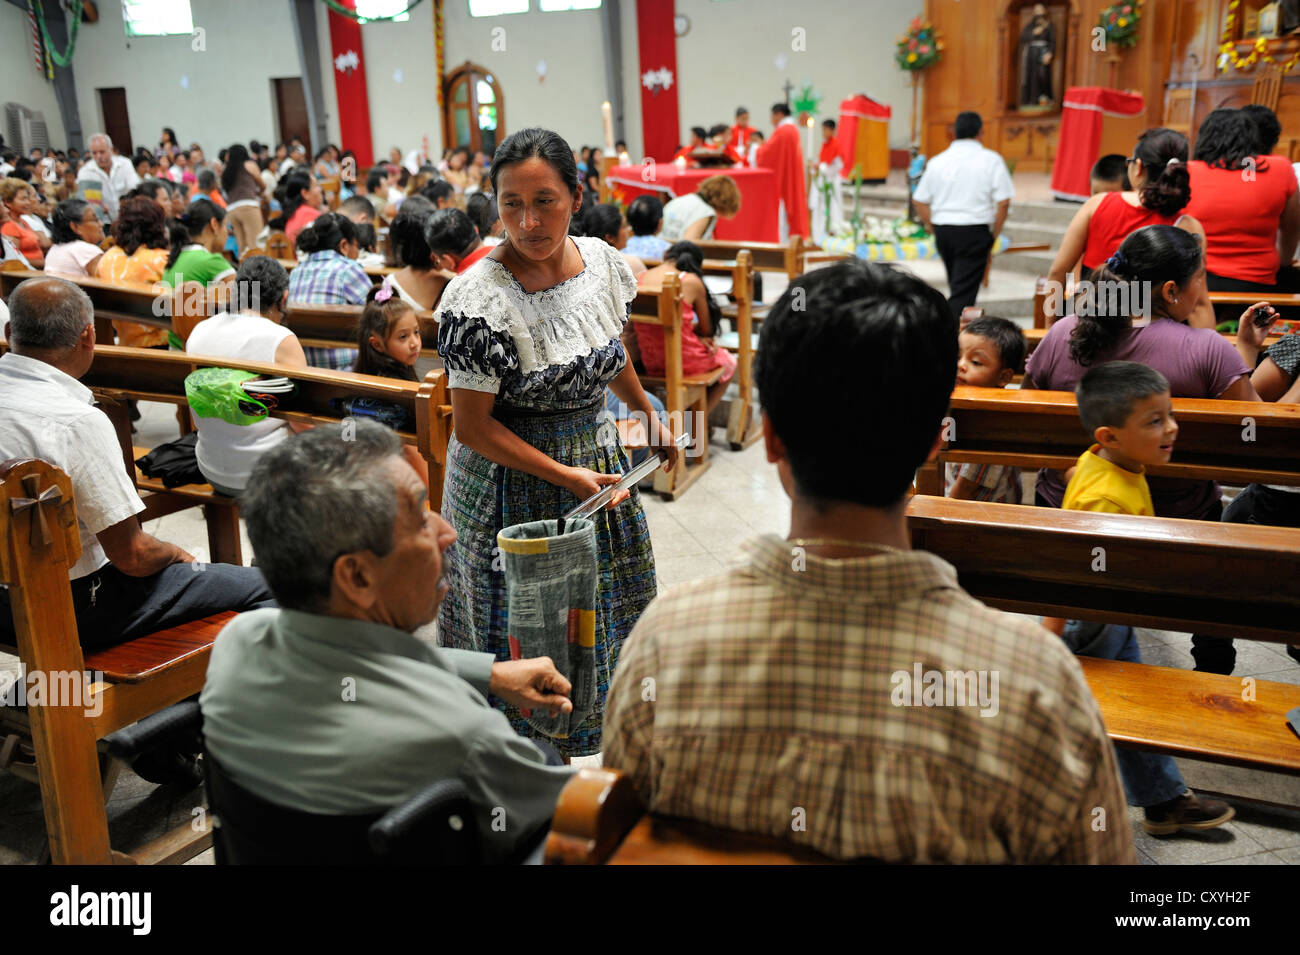 Collecte, Whitsun mass, Dios Con Nosotros church parish, El Mesquital, Guatemala City, Guatemala, Central America - Stock Image